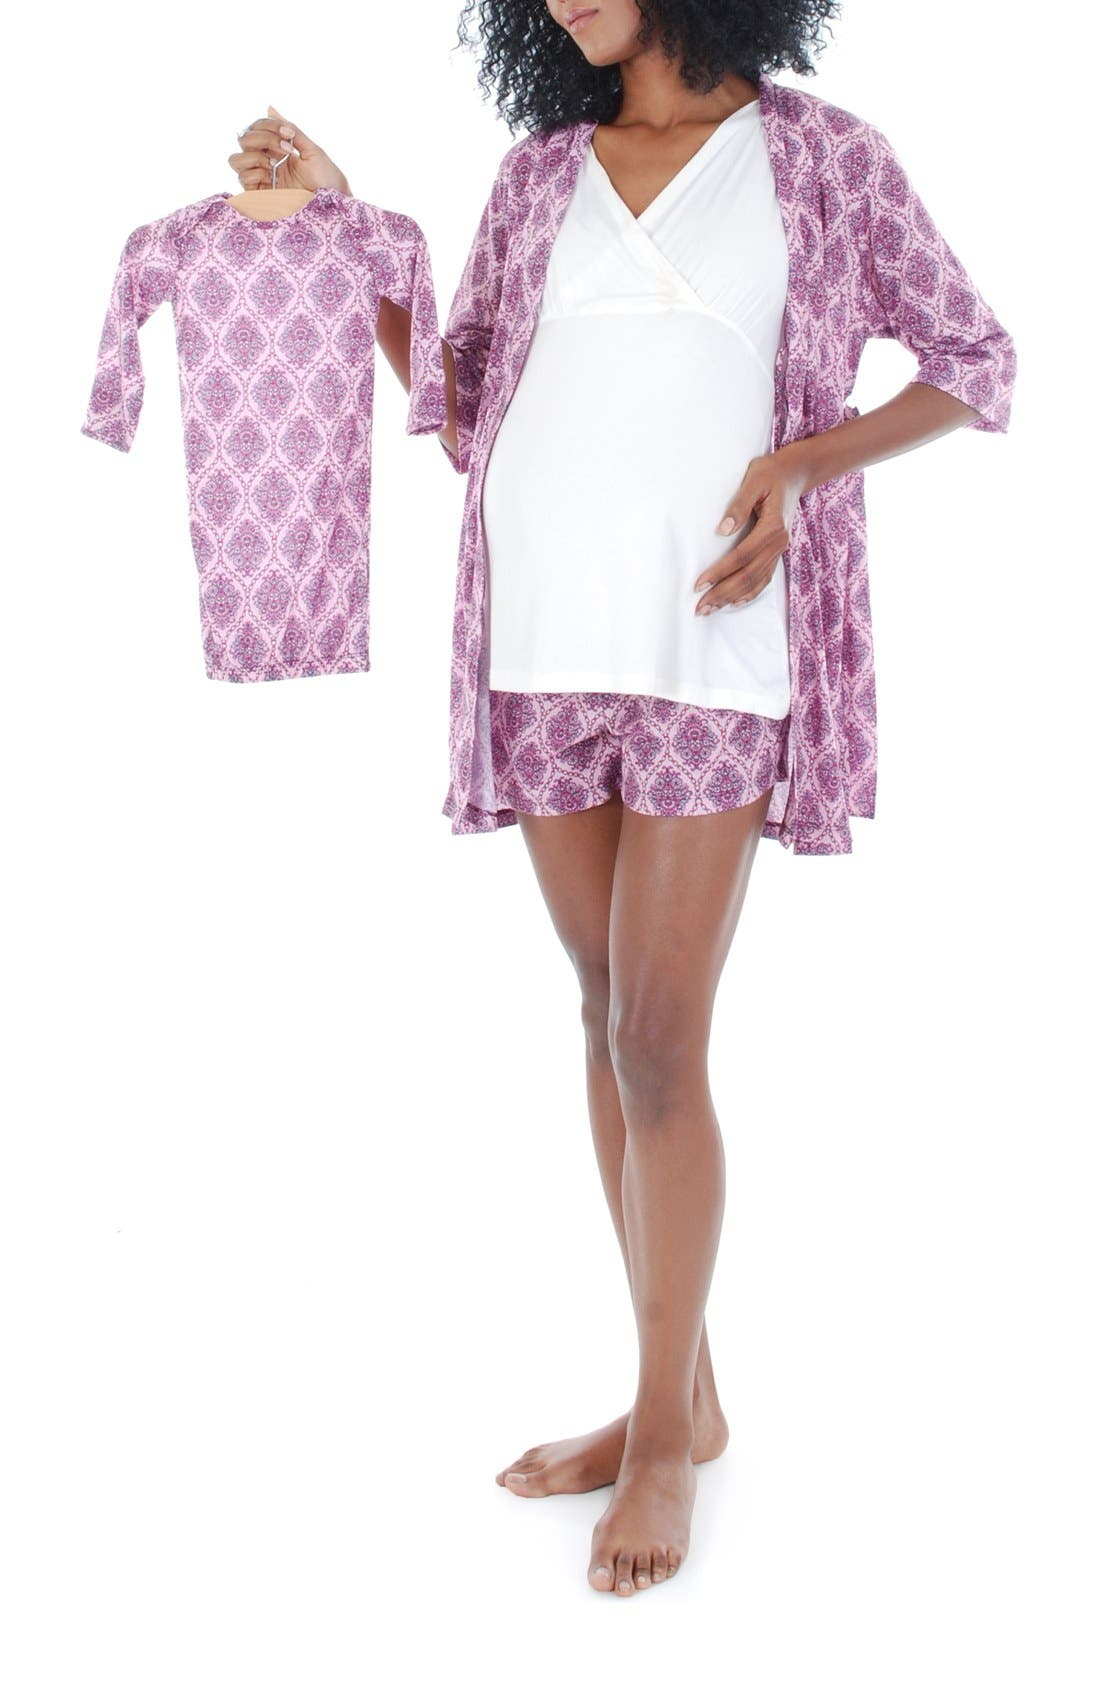 Main Image - Everly Grey 'Daphne - During & After' 5-Piece Maternity Sleepwear Set